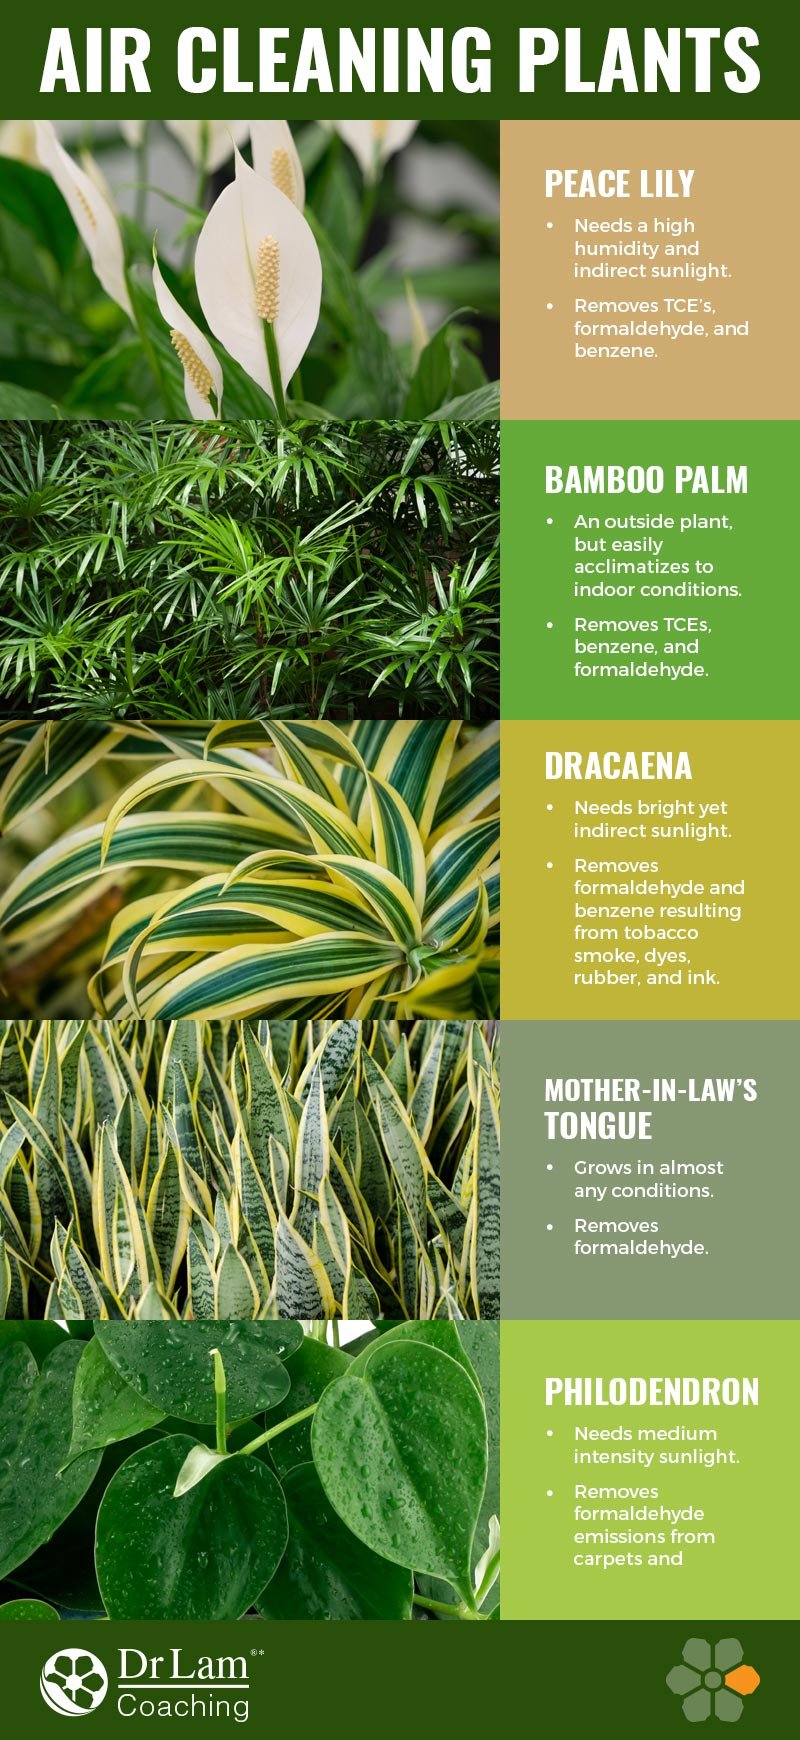 Check out this easy to understand infographic about air cleaning plants